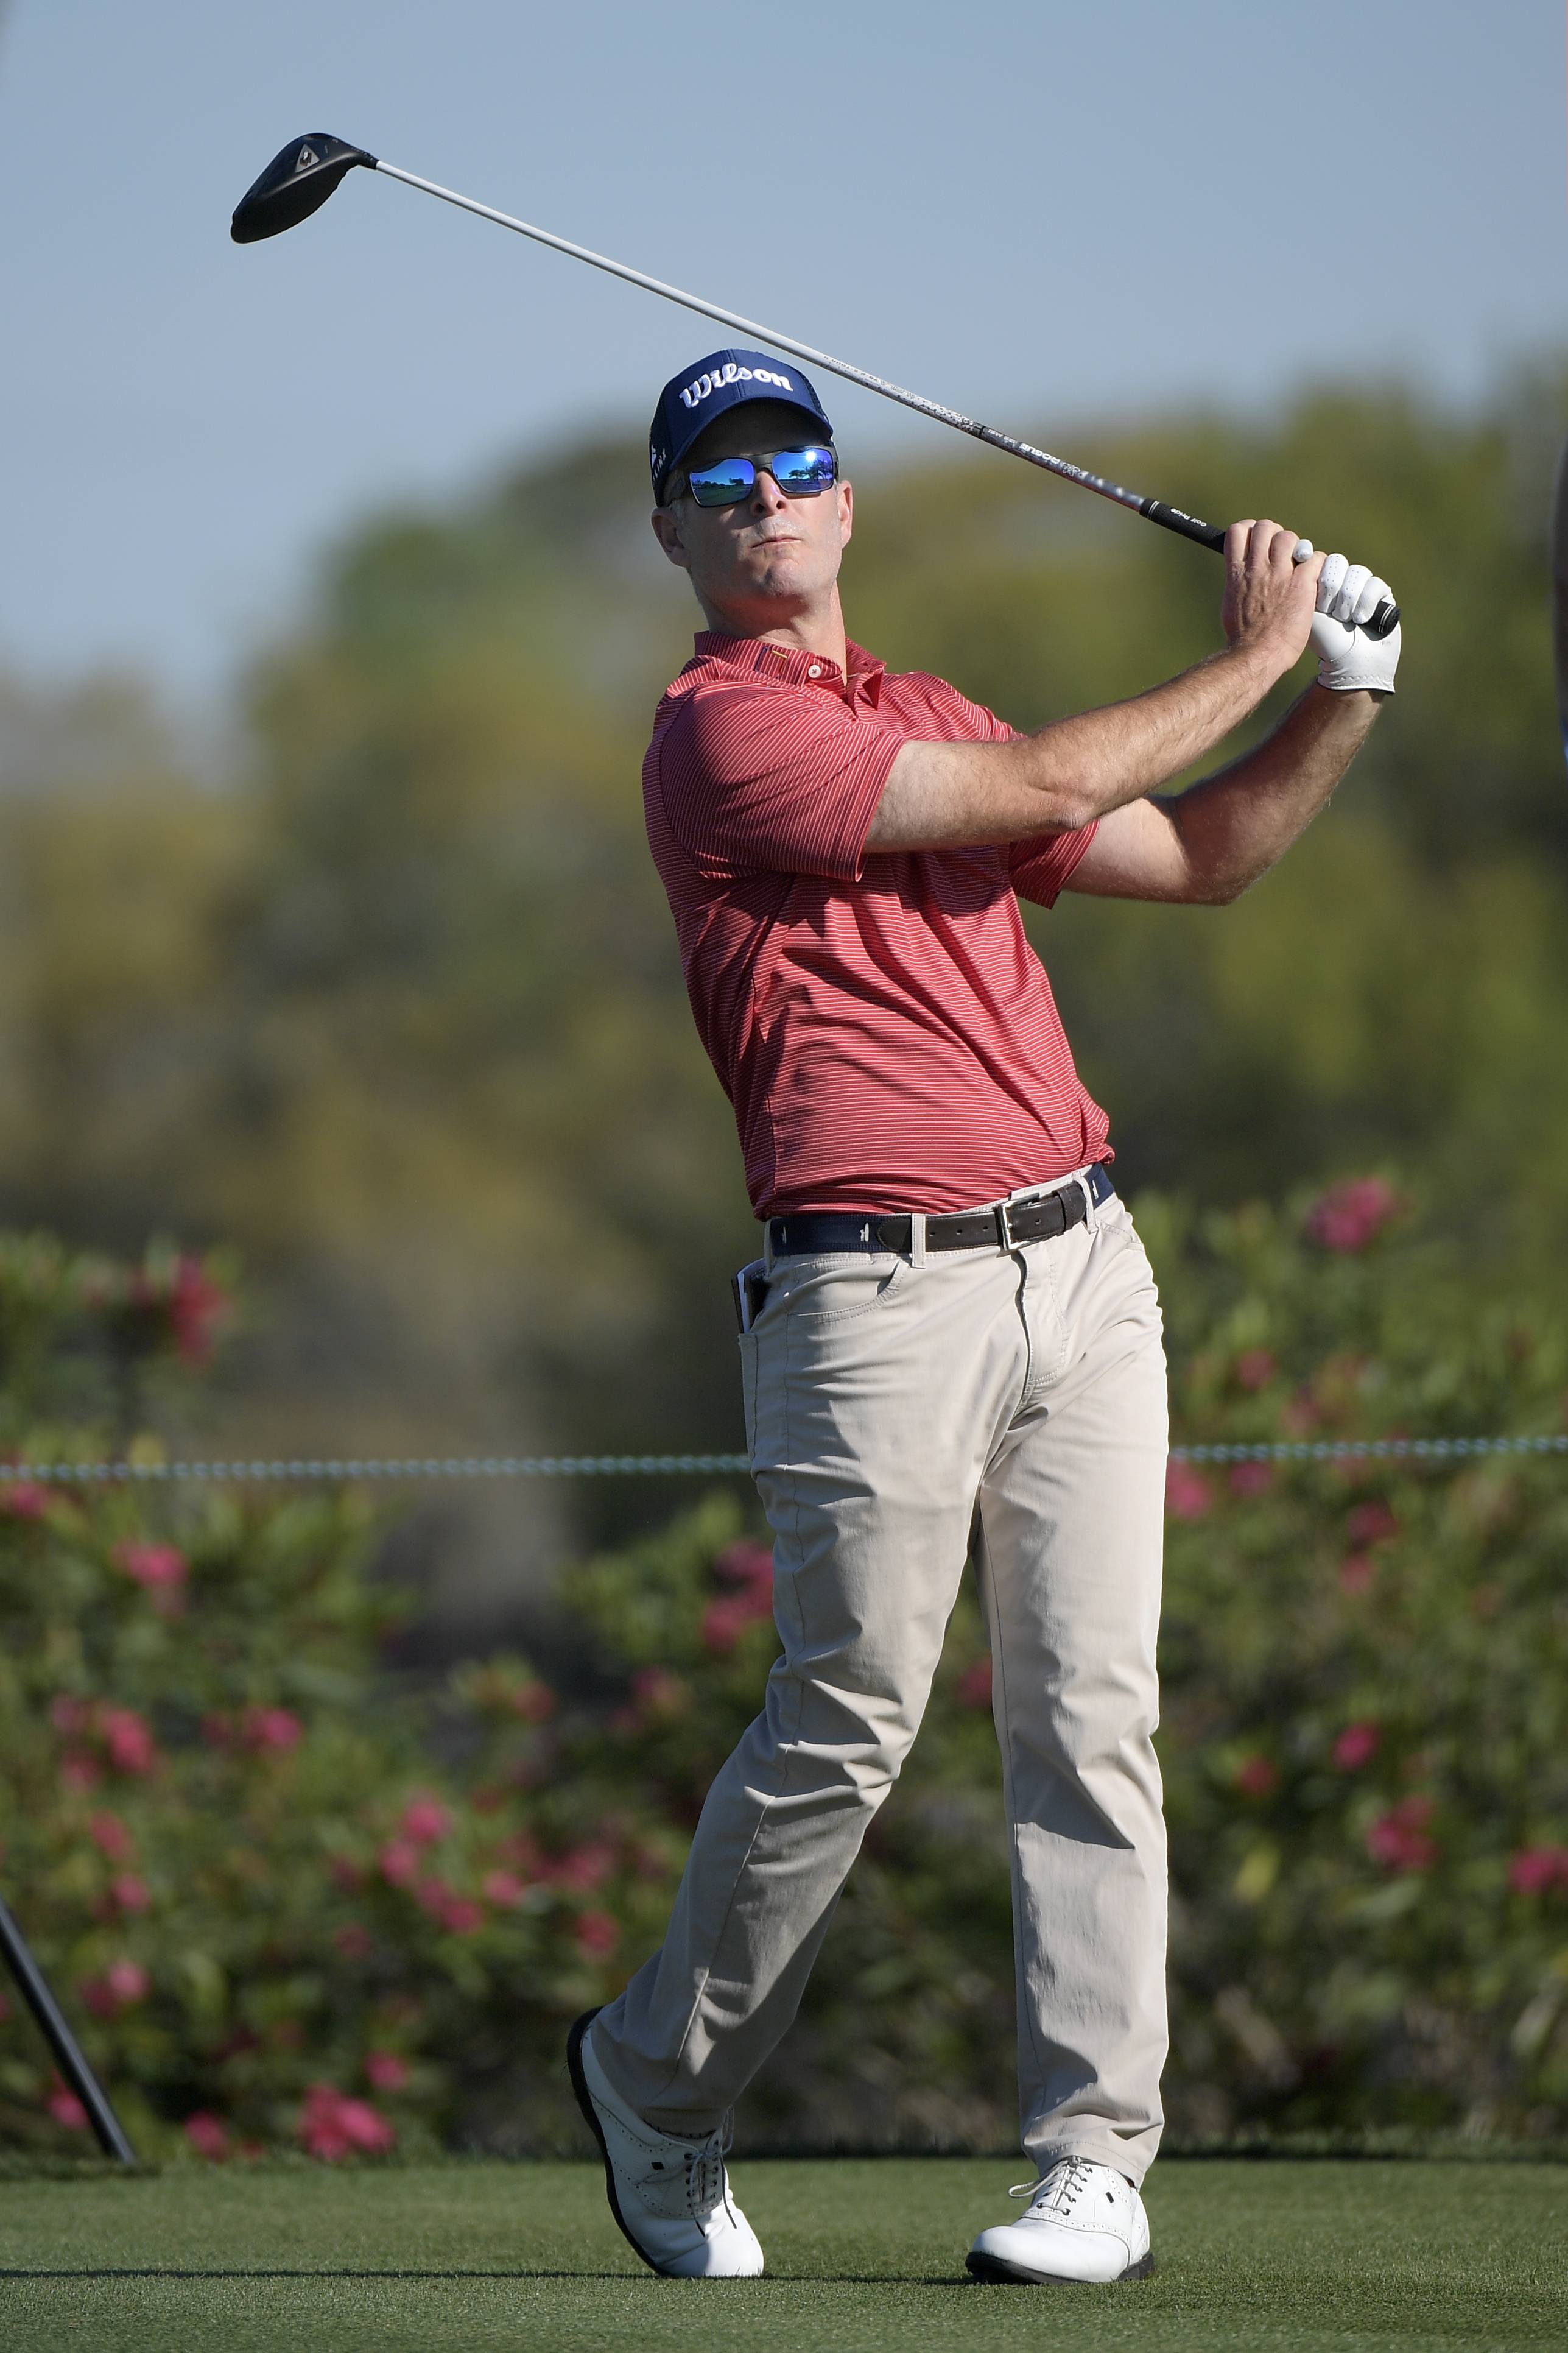 Kevin Streelman of Wheaton, shown here during the third round of the Arnold Palmer Invitational last month, ranks 16th in driving accuracy on the PGA Tour this season.